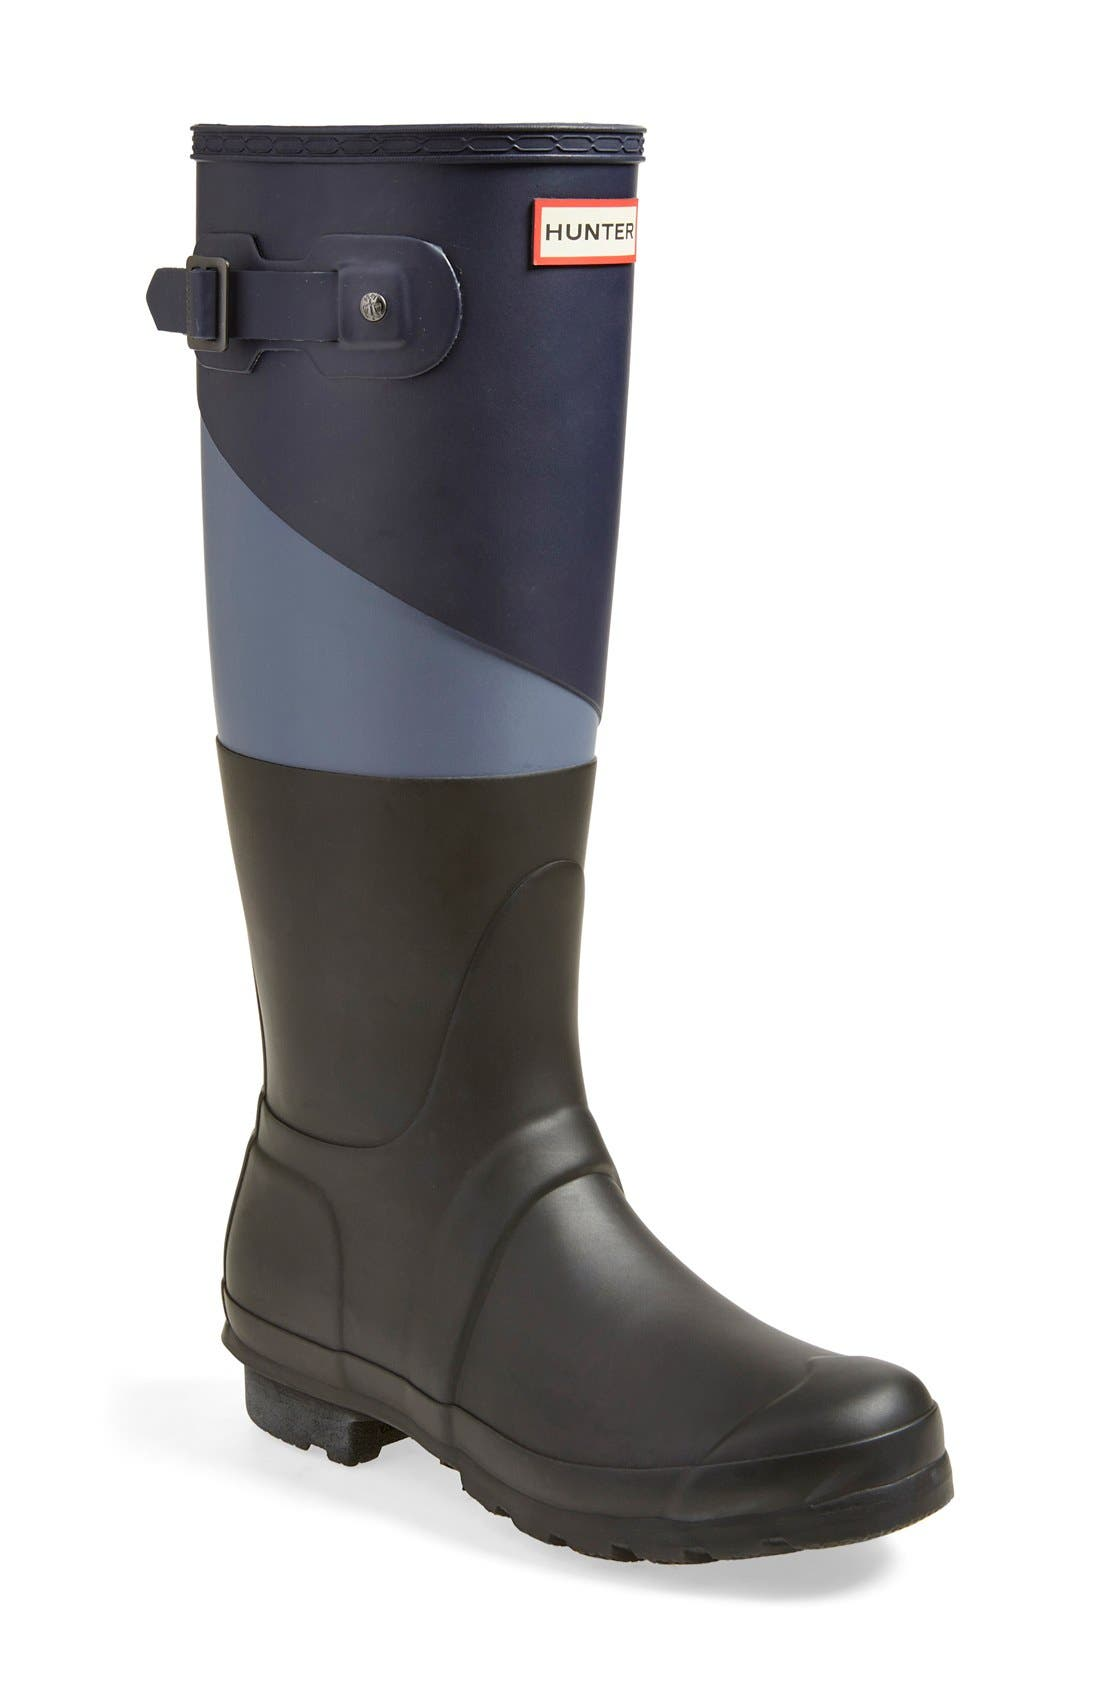 Alternate Image 1 Selected - Hunter 'Original - Asymmetric Colorblock' Waterproof Rain Boot (Women)